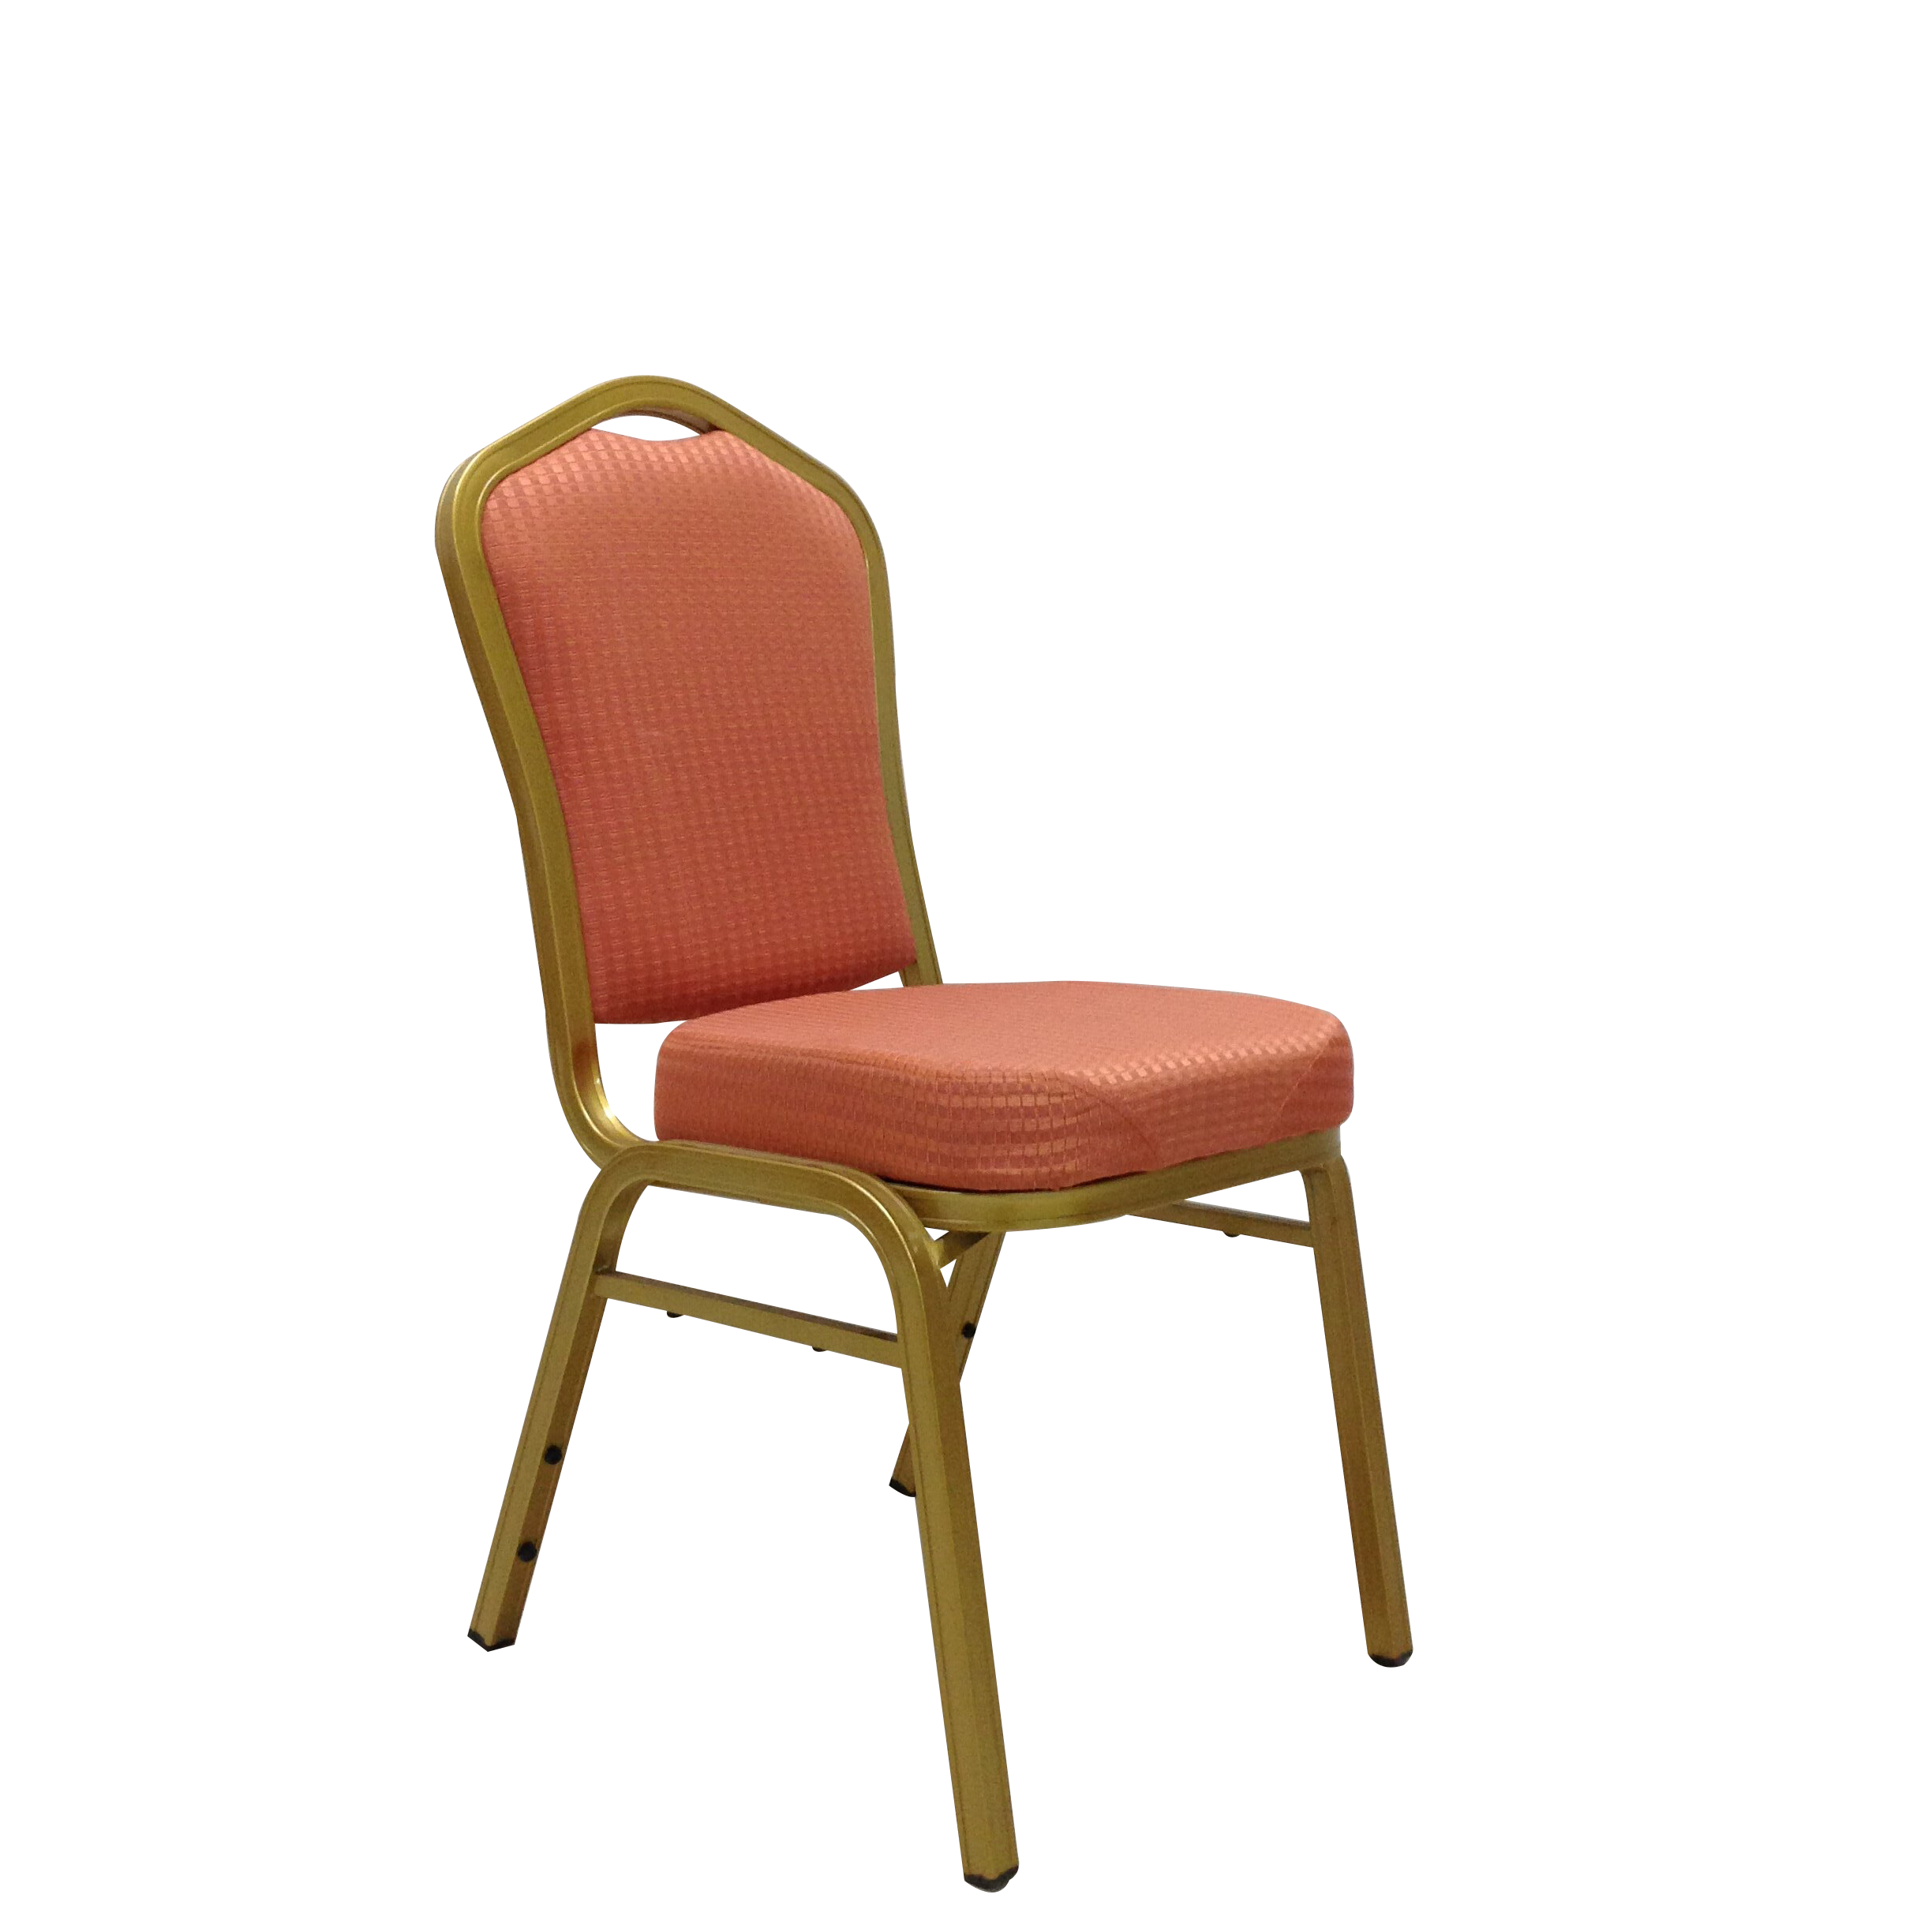 Hot Selling for Big Wooden Strong Armrest Auditorium Chair -